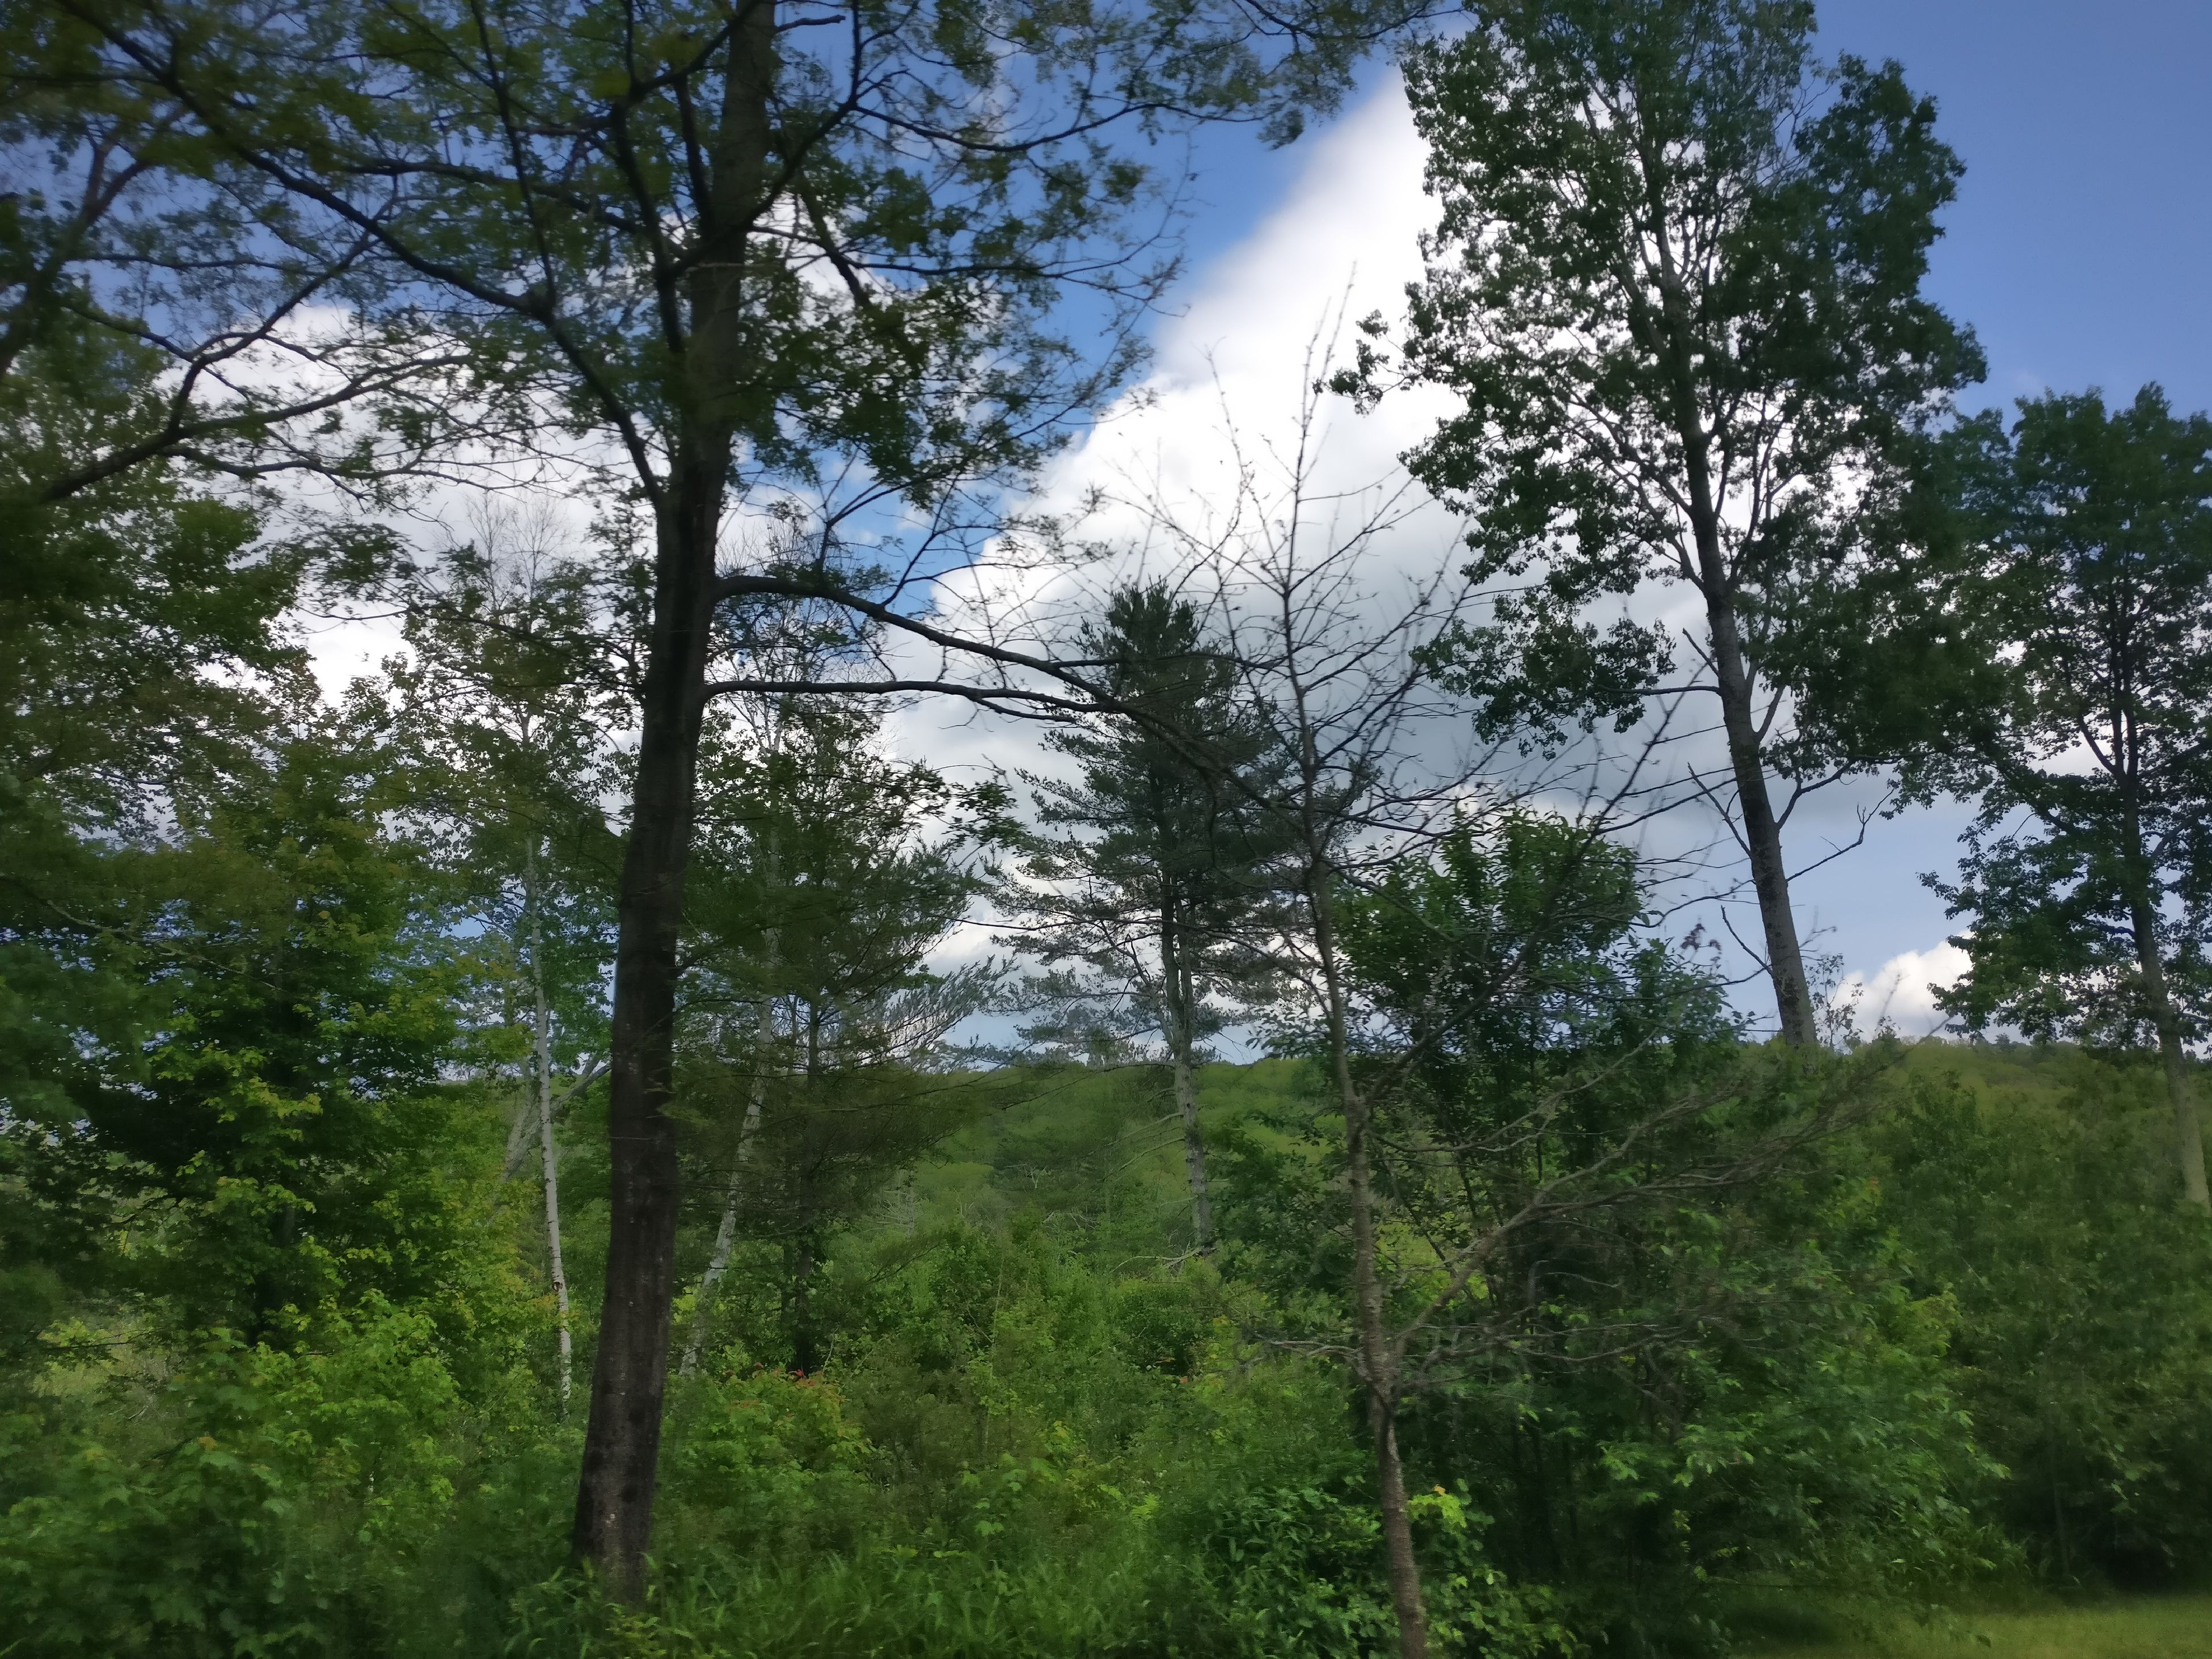 tree, nature, forest, growth, low angle view, day, no people, beauty in nature, outdoors, tranquility, plant, landscape, branch, sky